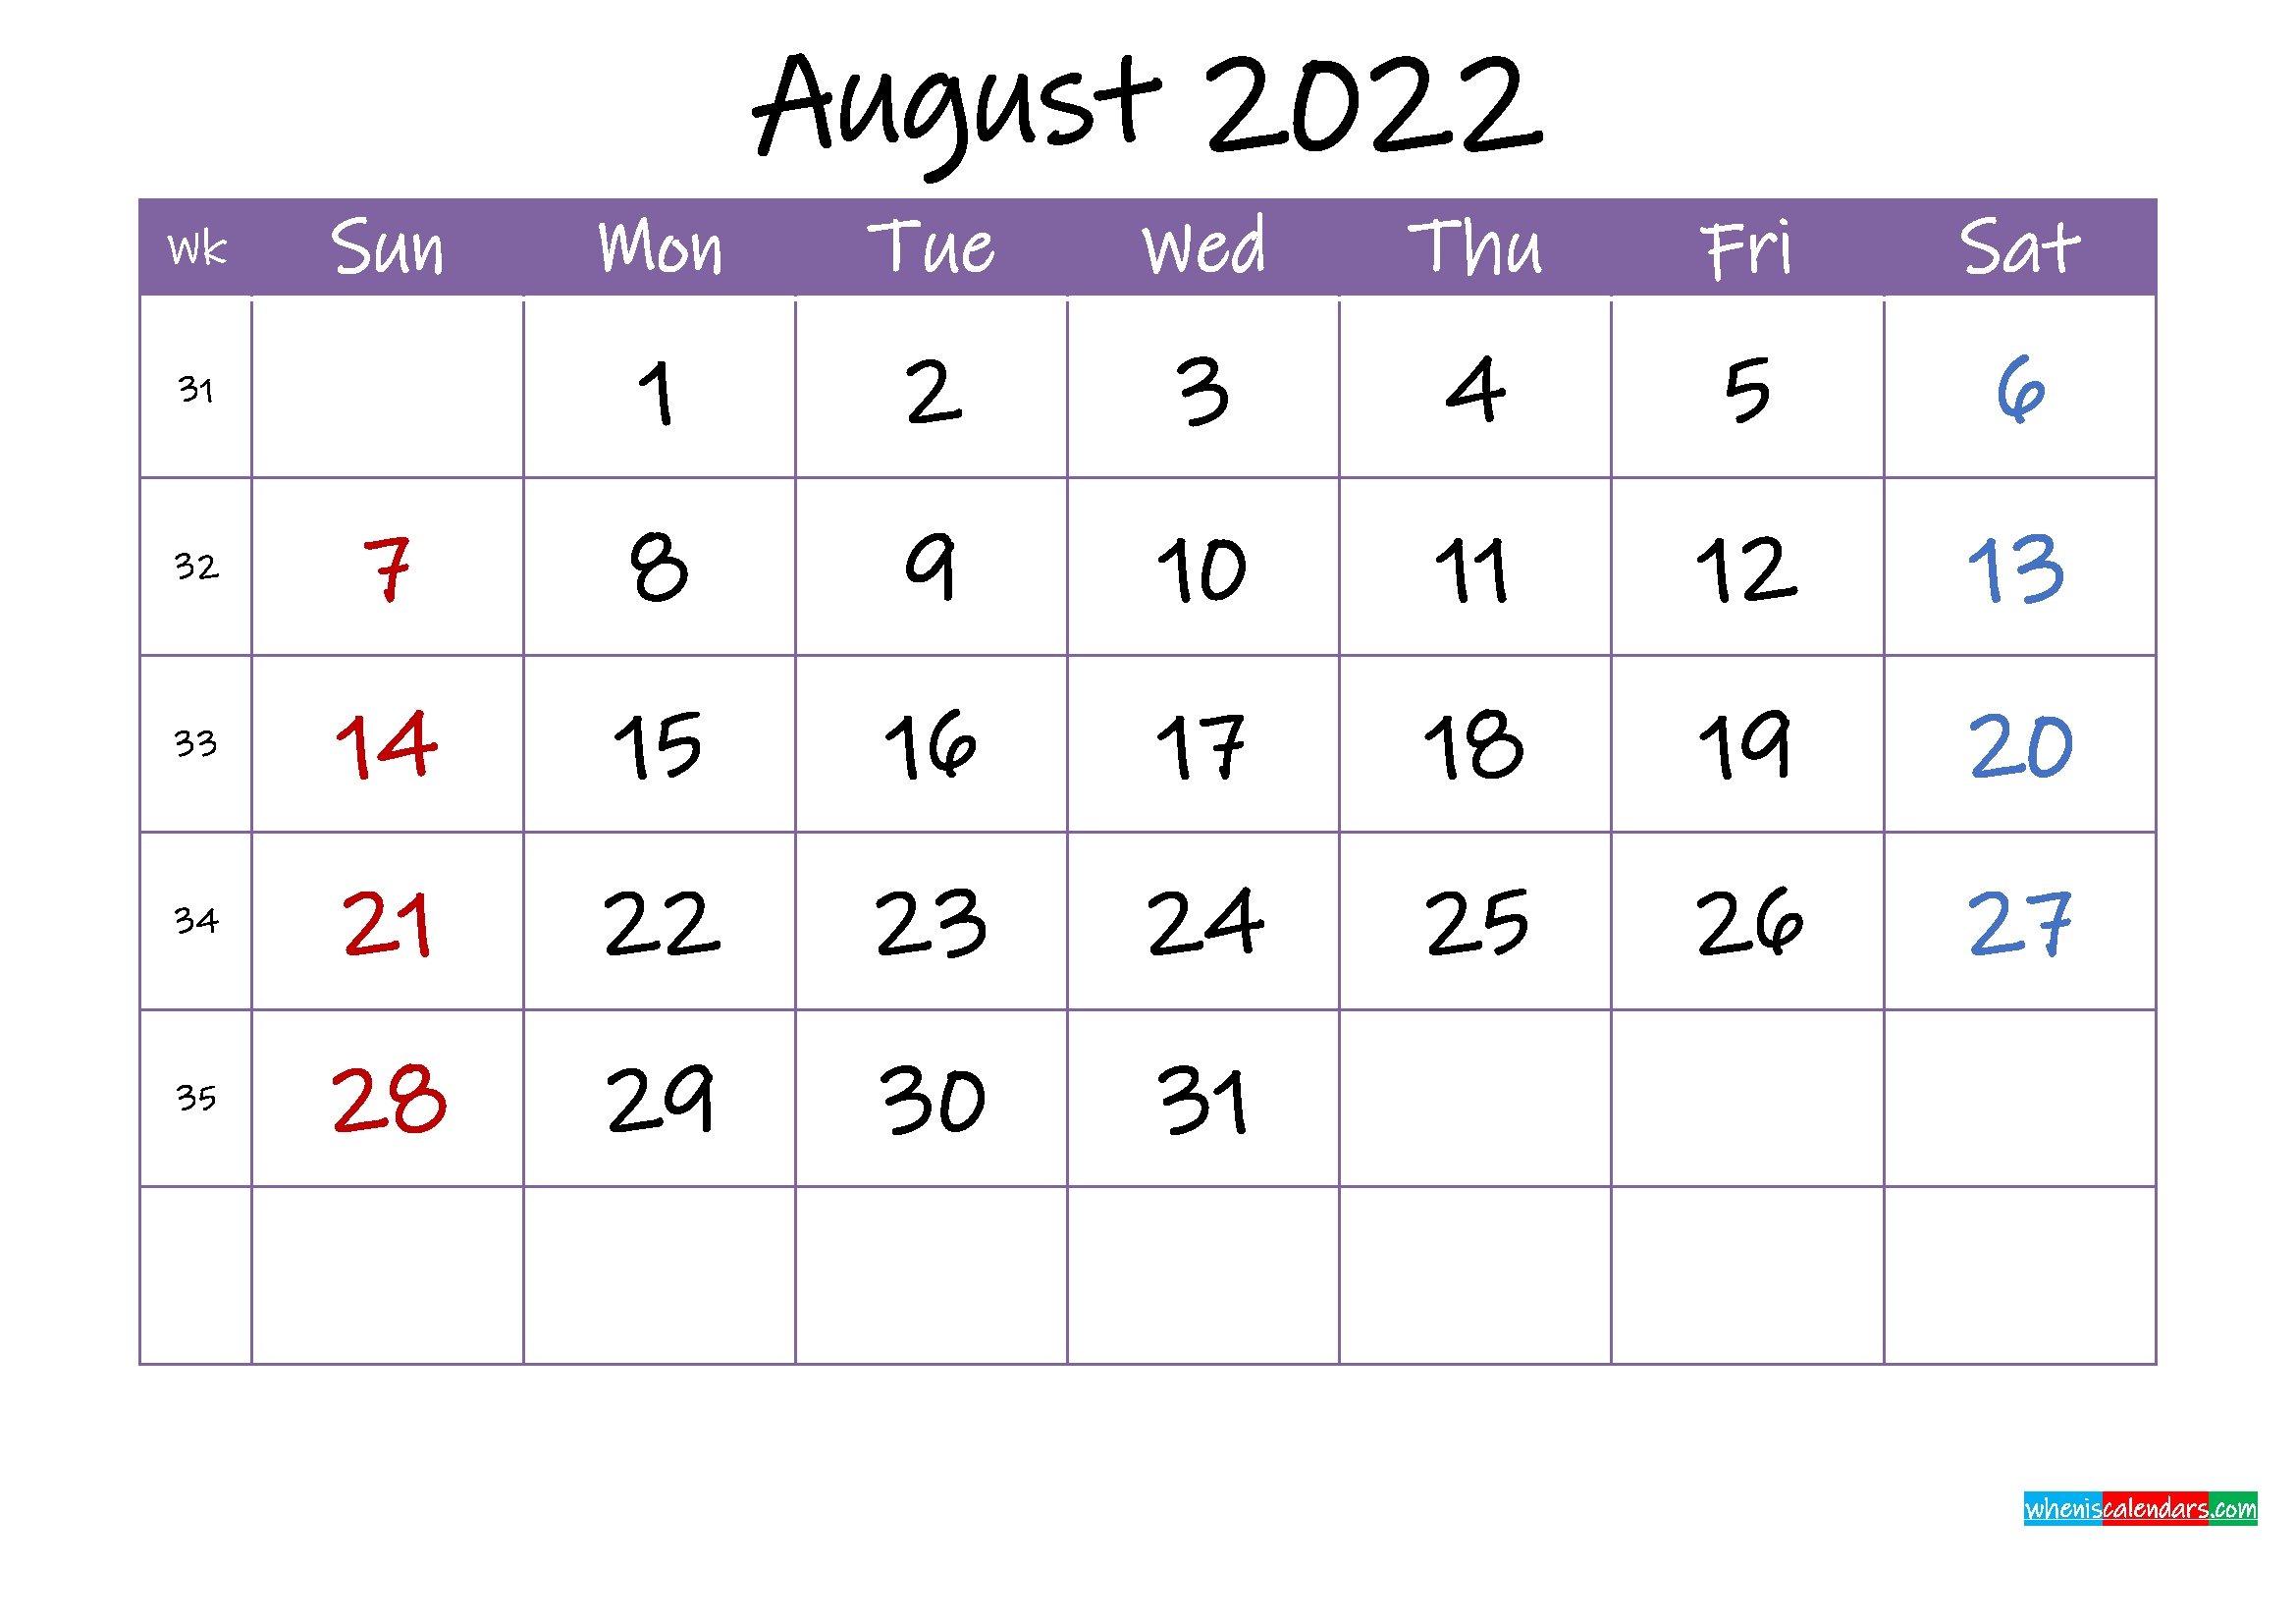 August 2022 Calendar with Holidays Printable